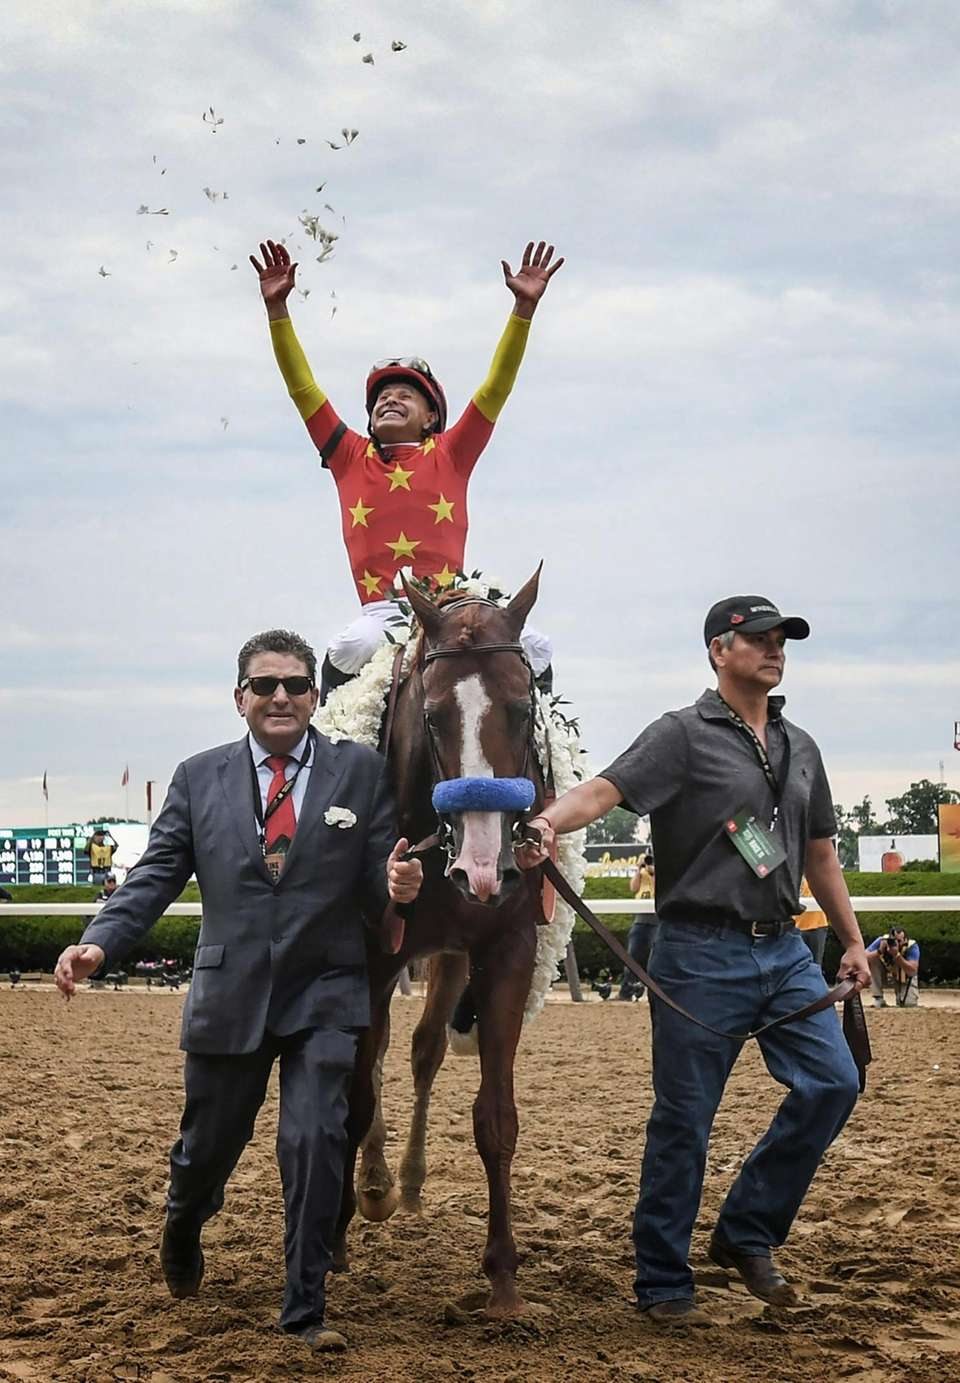 Jockey Mike Smith throws rose petals in the